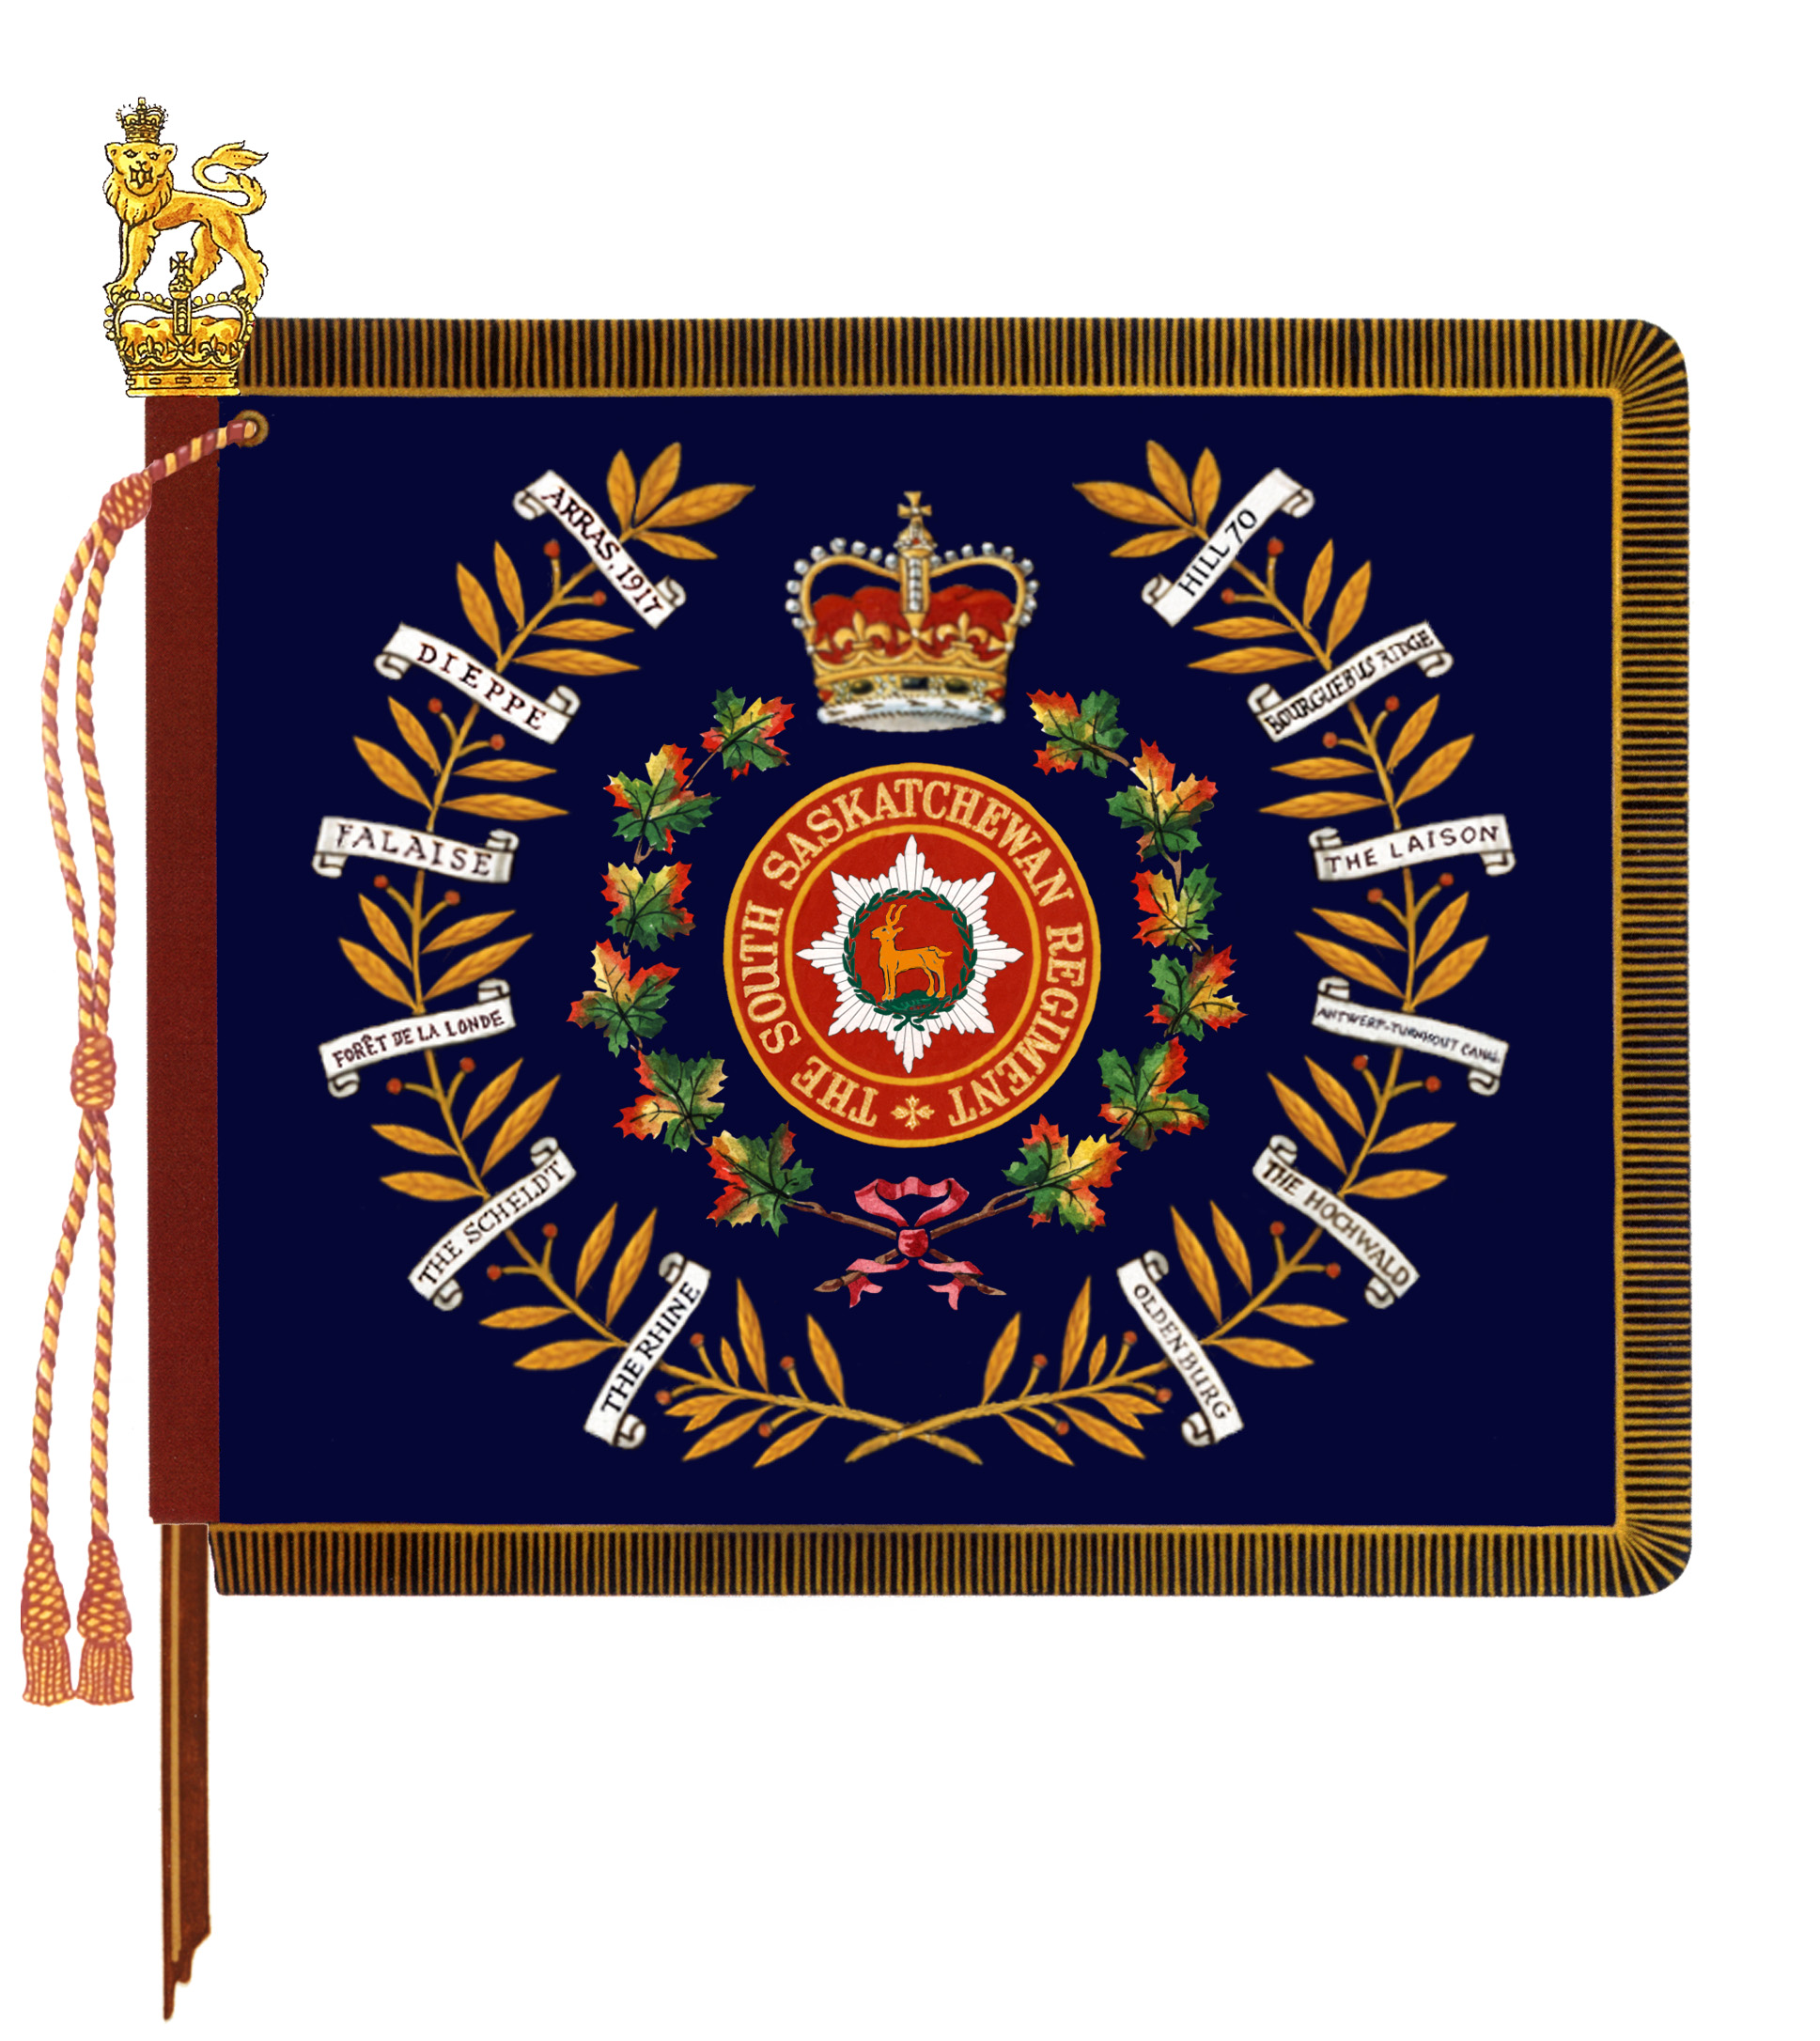 The South Saskatchewan Regiment